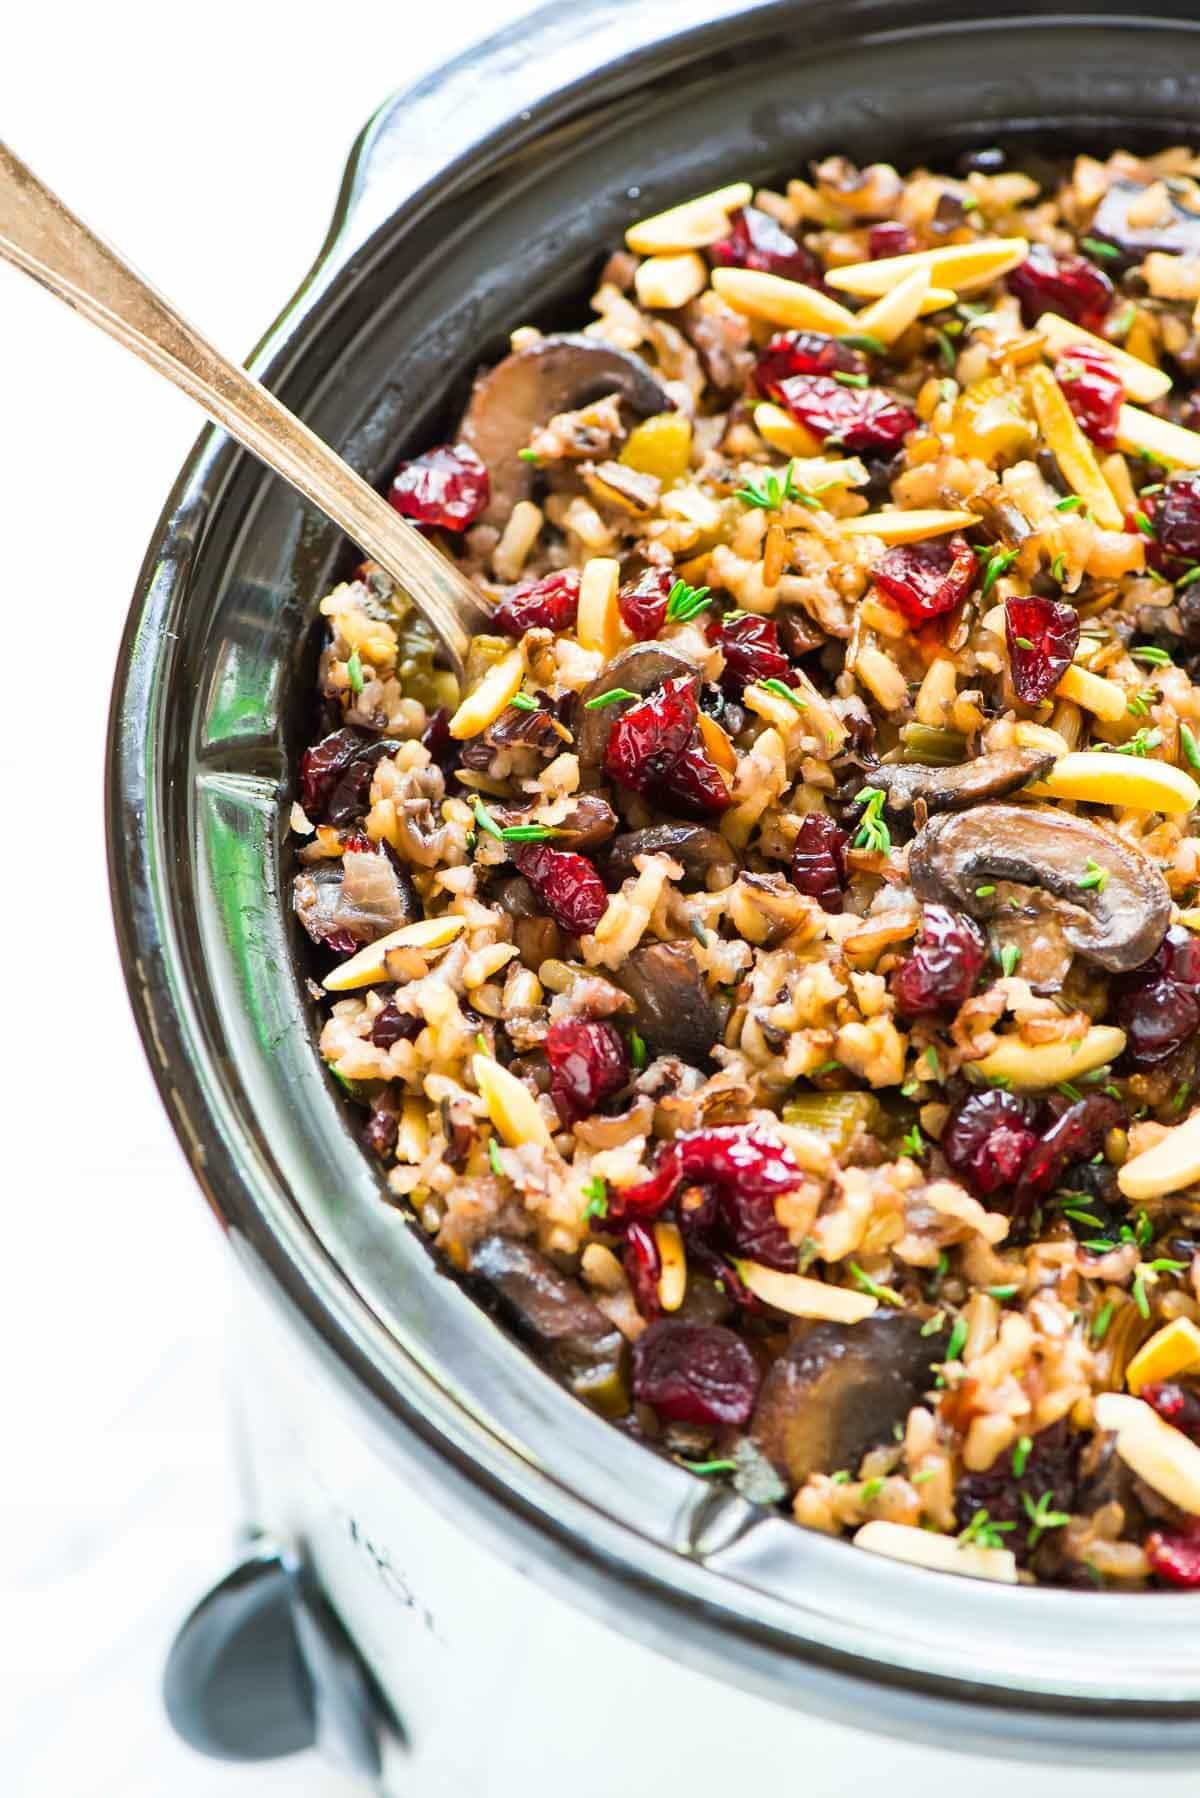 Crock Pot Wild Rice Stuffing with Cranberries and Almonds. Gluten free and DELICIOUS. Easy to make ahead, and the slow cooker frees up the oven so it's perfect for Thanksgiving, Christmas, or anytime you are hosting a crowd. Recipe at wellplated.com   @wellplated